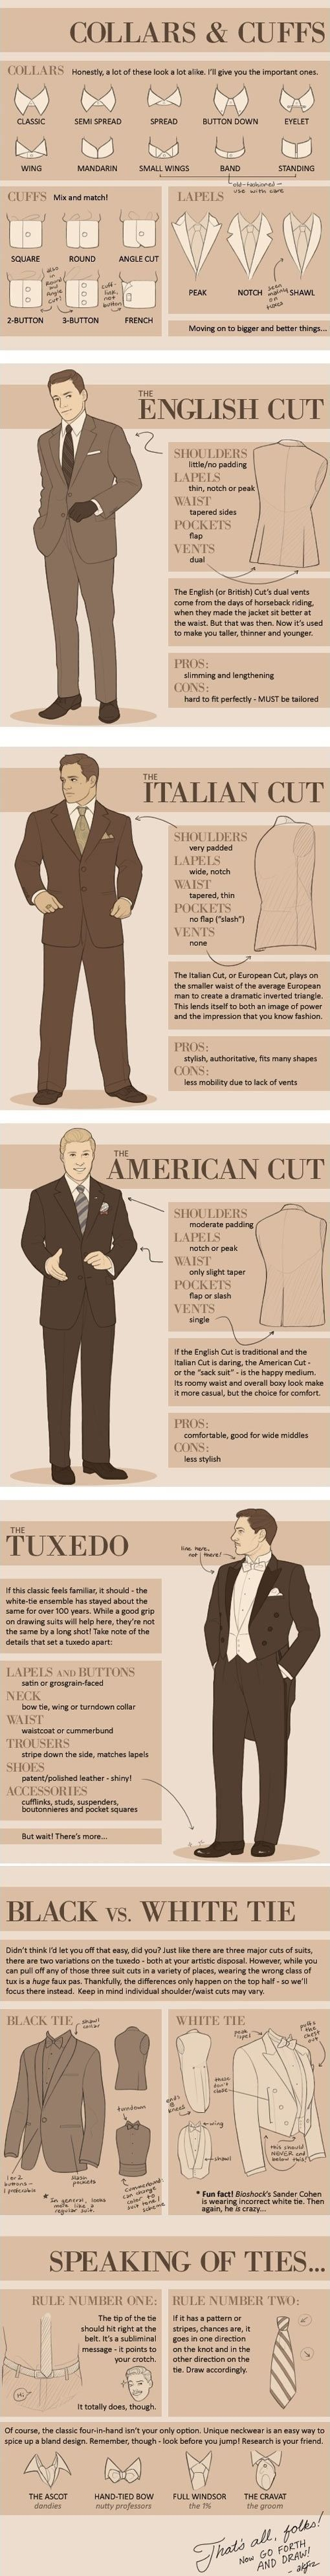 best man suit images on pinterest man style menswear and men wear